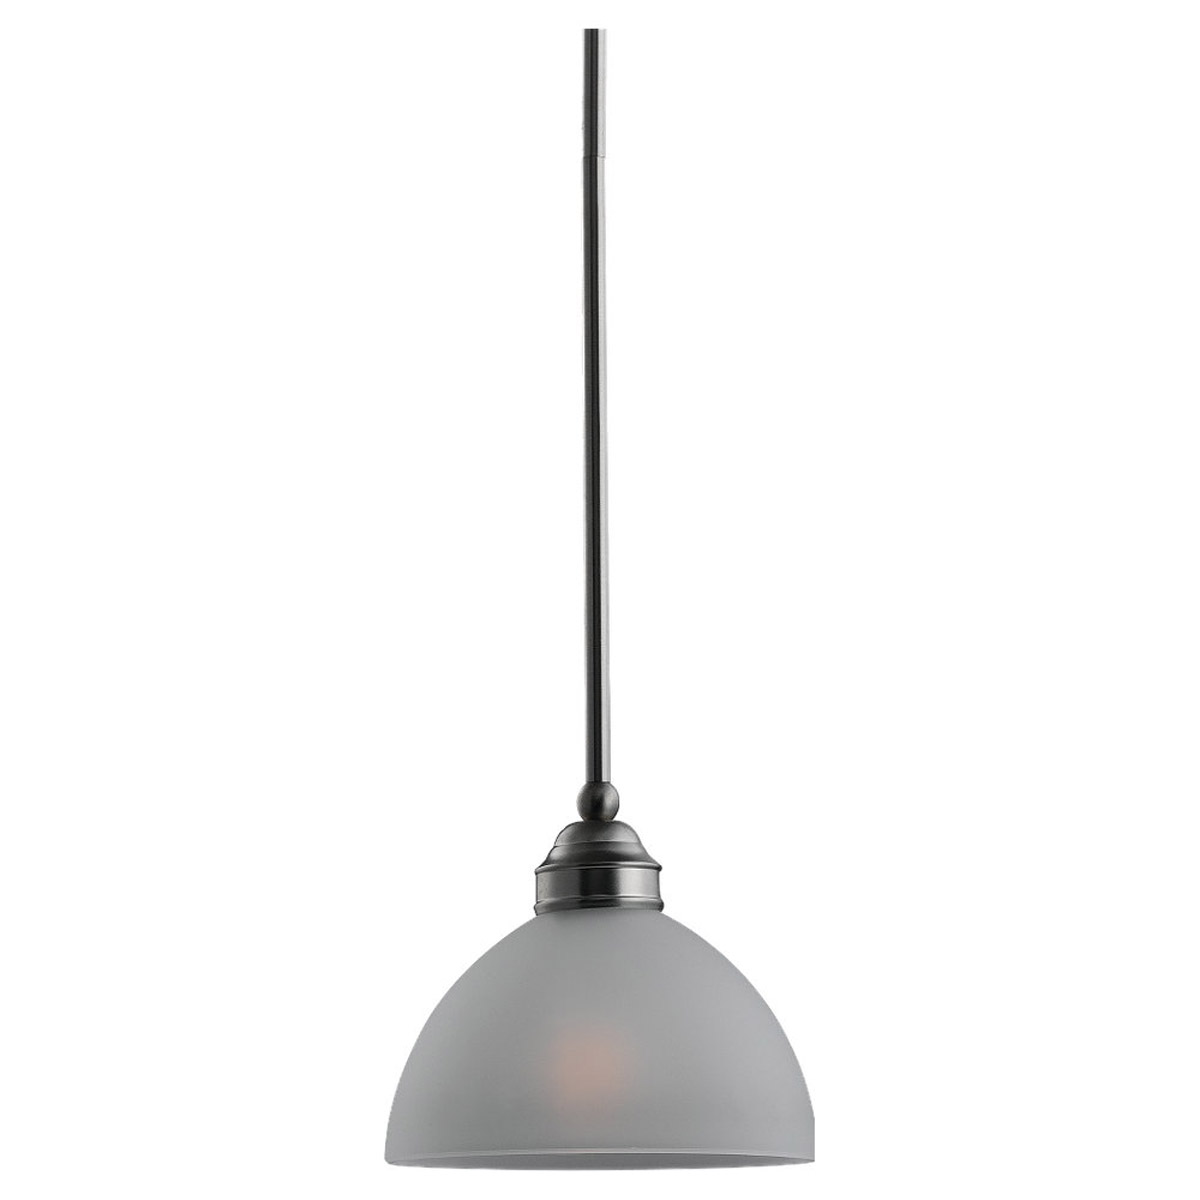 Sea Gull Lighting Linwood 1 Light Mini Pendant in Brushed Nickel 61225-962 photo